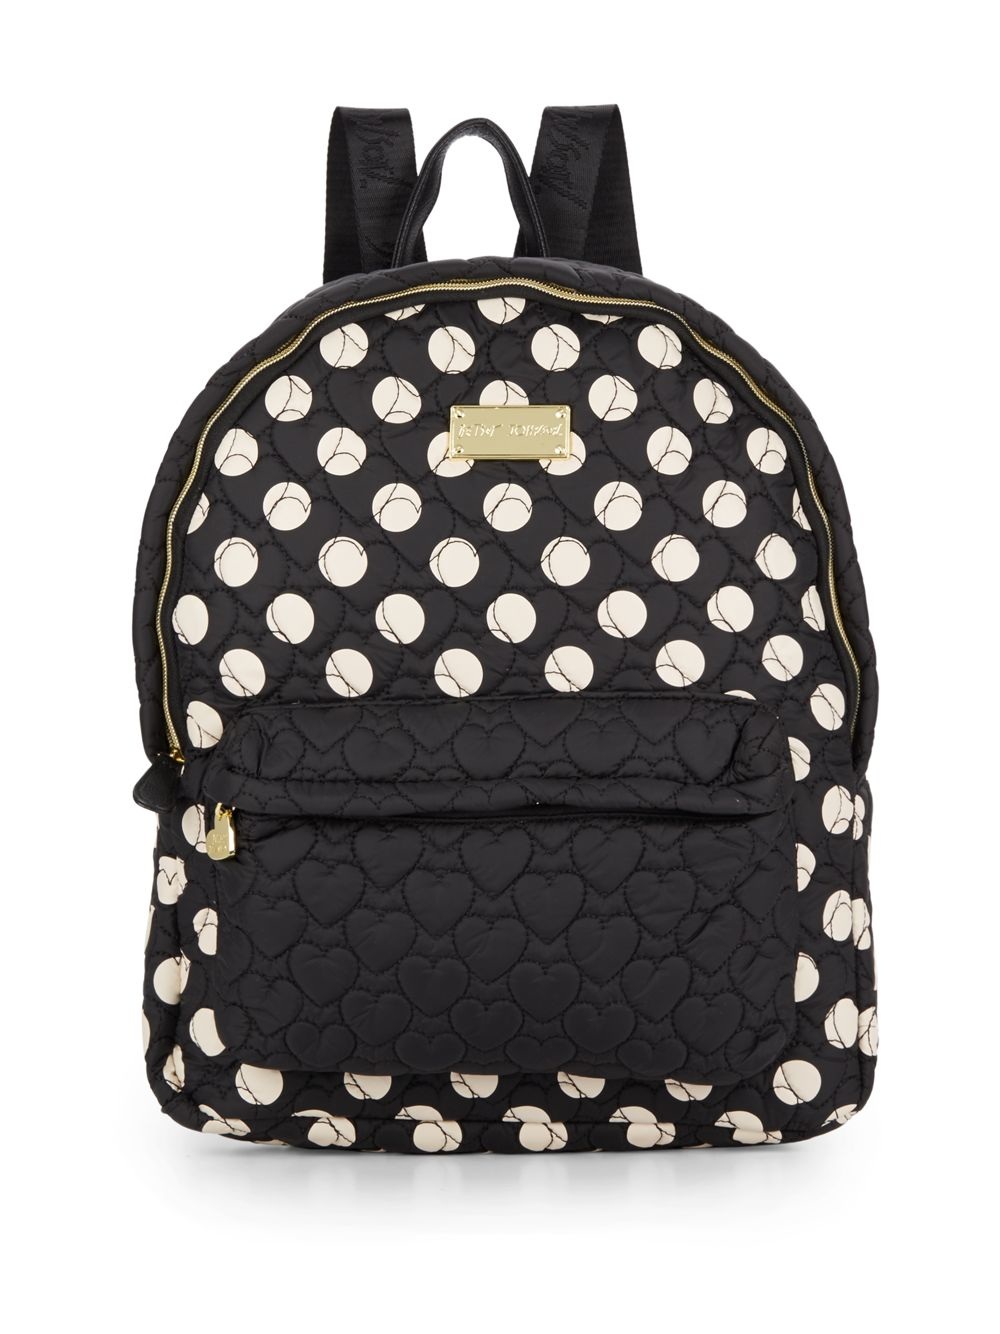 Betsey Johnson Tie The Knot Polka Dot Backpack In Black Lyst